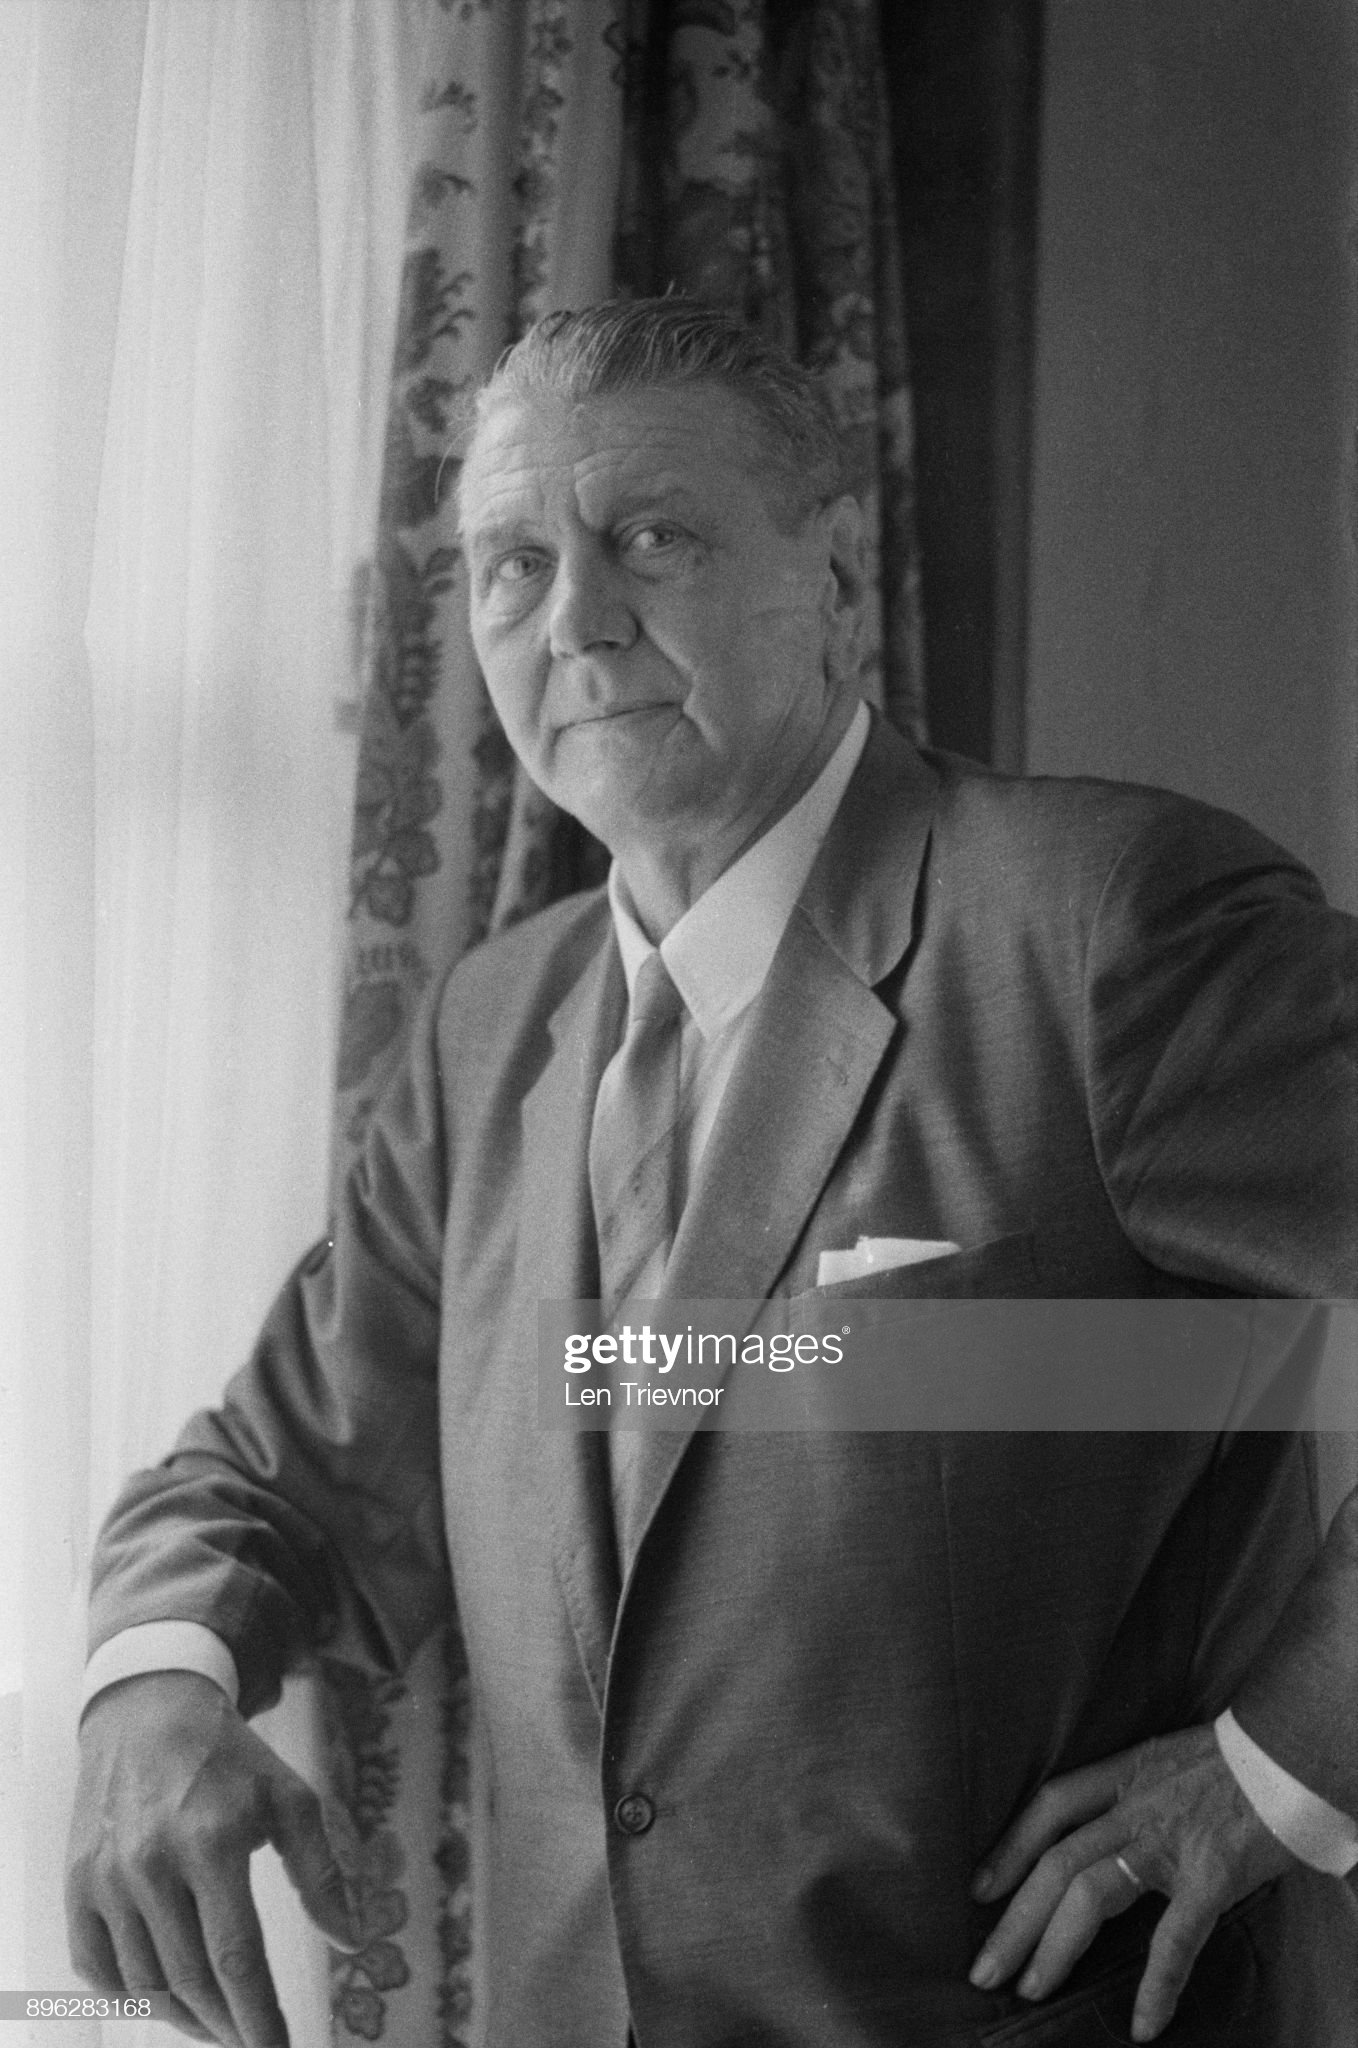 قائد الكوماندوس النازي Otto Skorzeny  Austrian-former-ss-lieutenant-colonel-otto-skorzeny-in-london-to-film-picture-id896283168?s=2048x2048